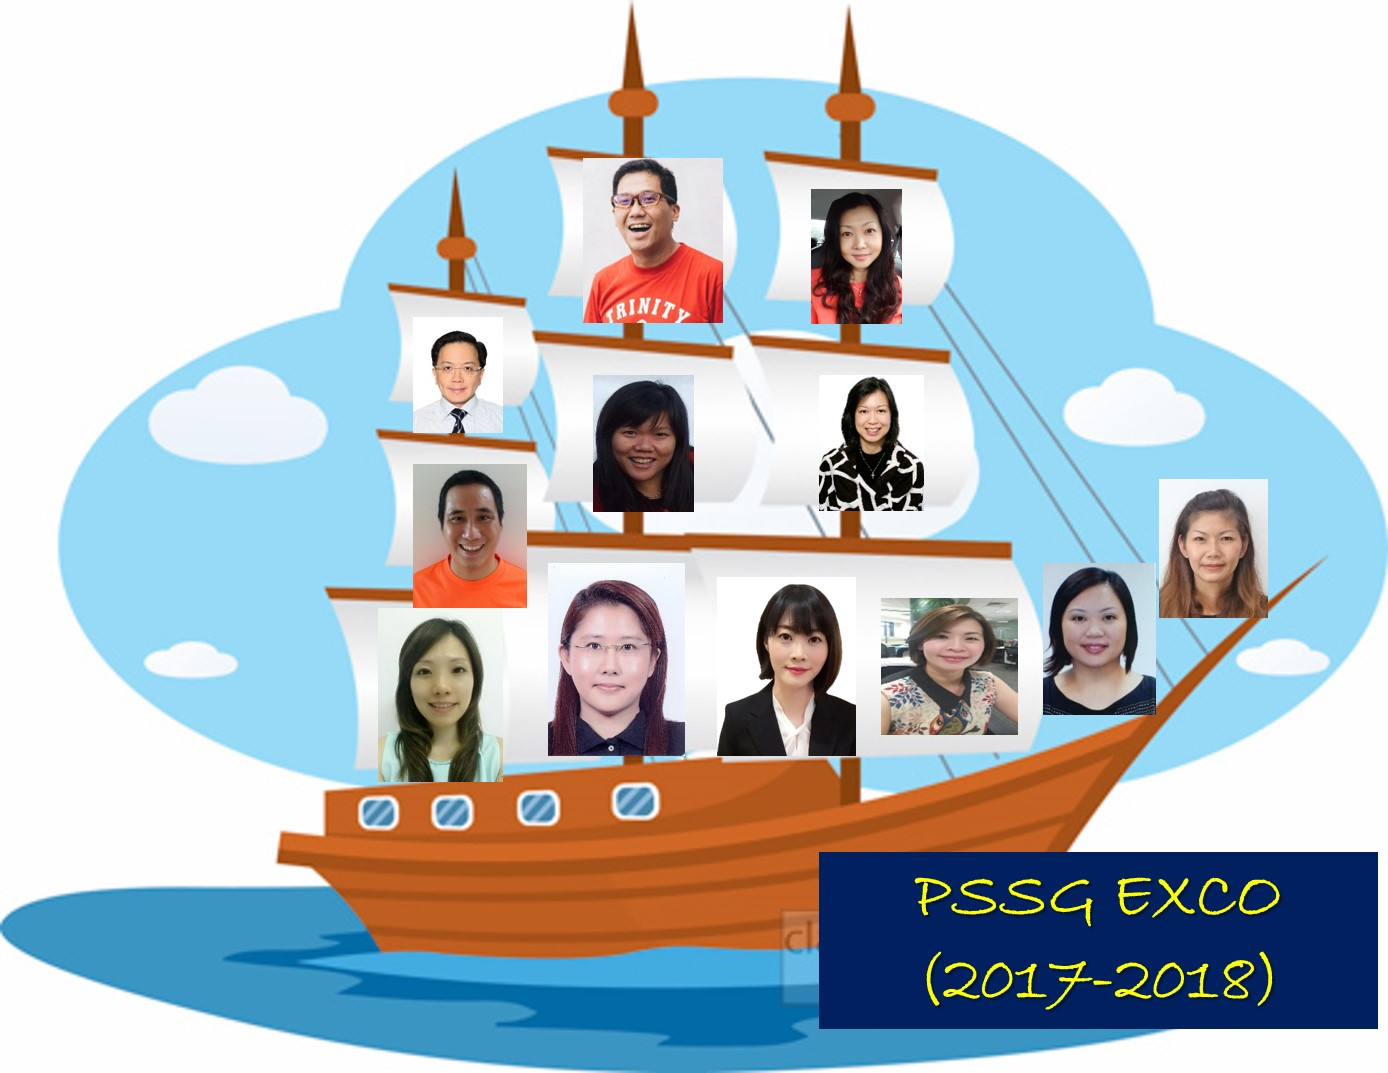 exco pssg.jpg